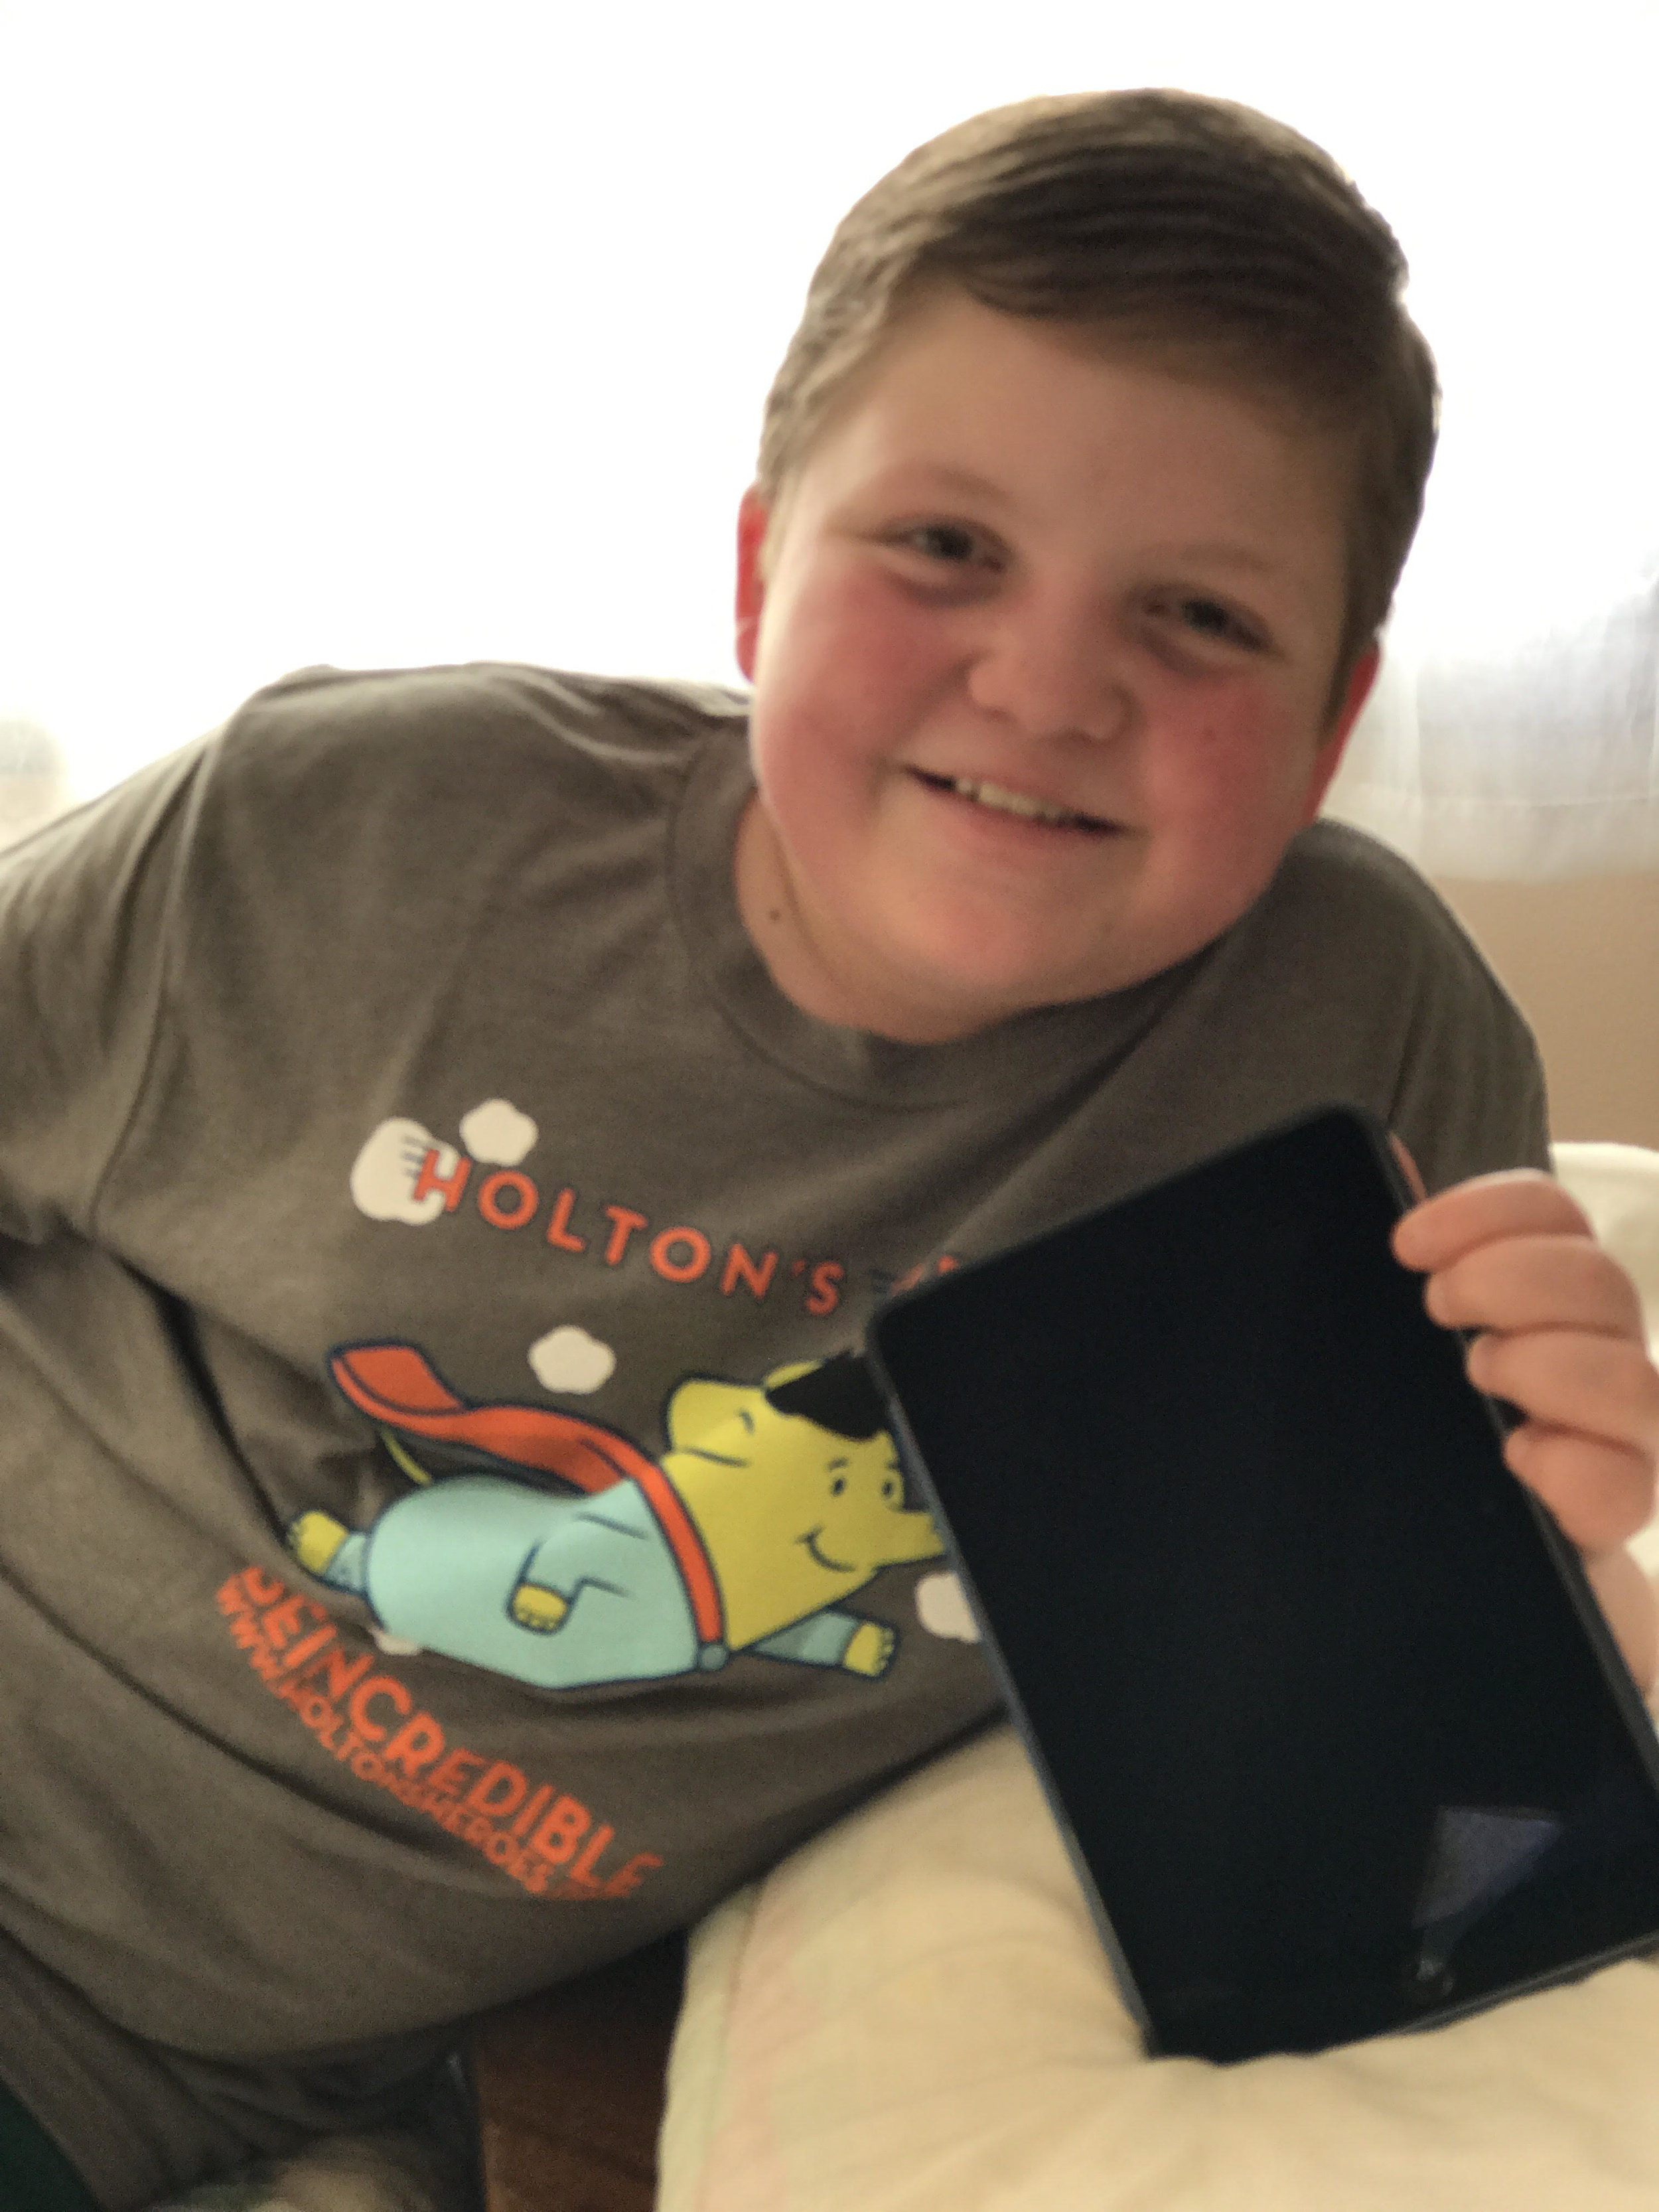 Owen rocking his HH shirt while displaying his new iPad mini for therapy